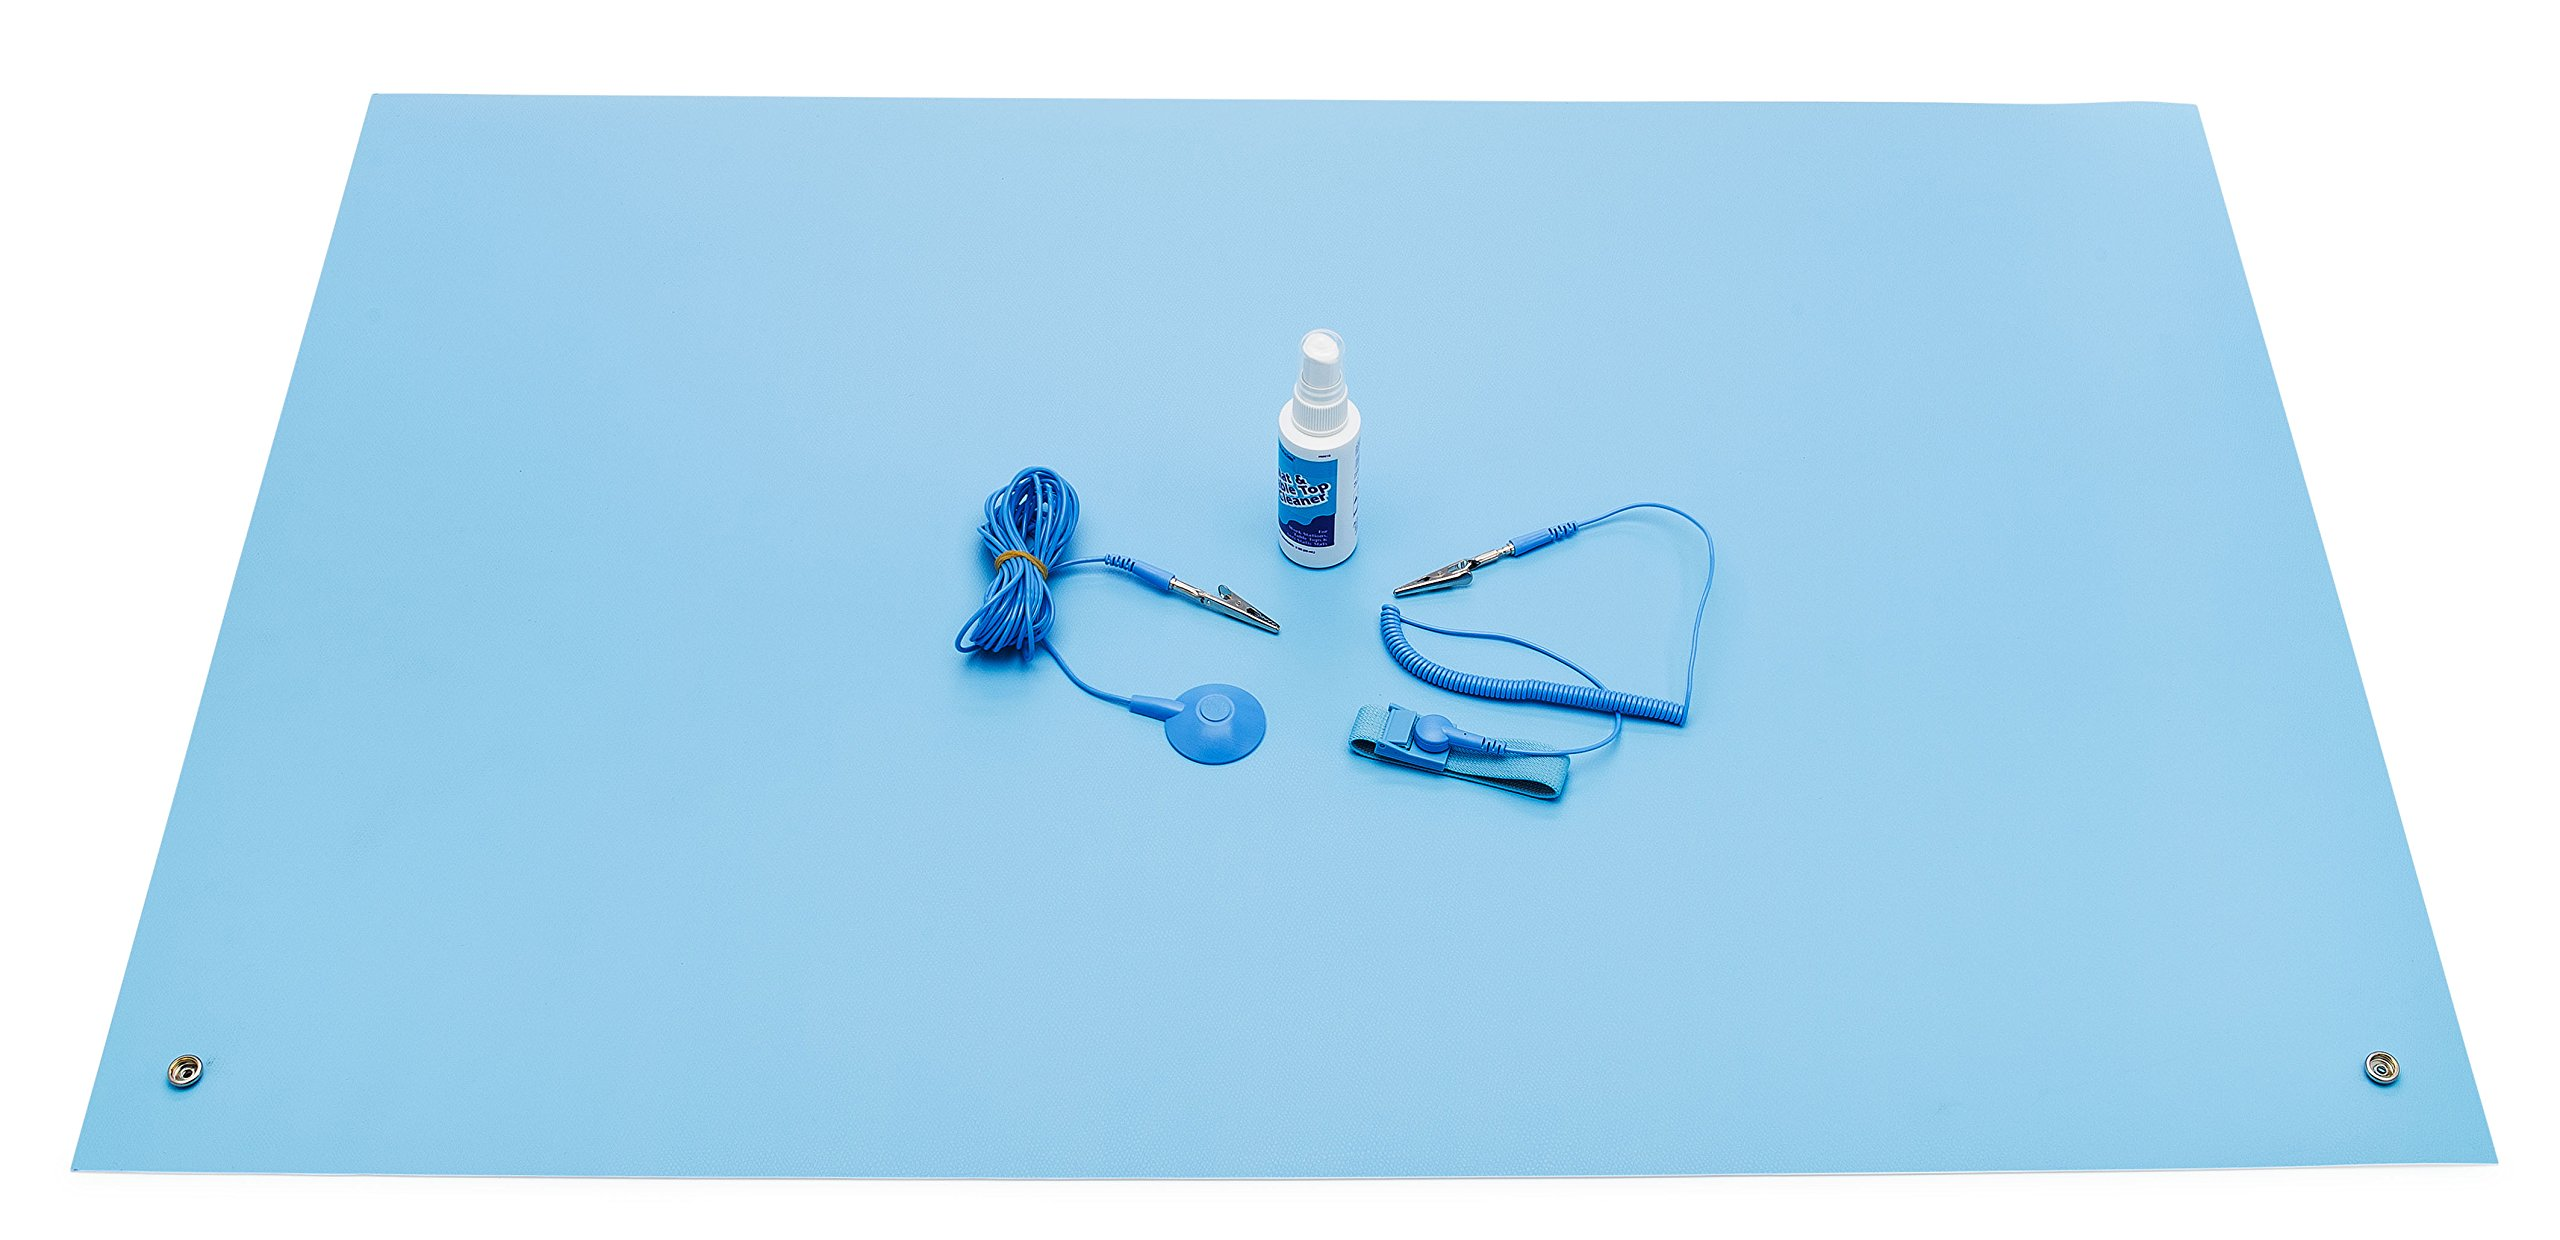 ESD High Temperature Mat Kit | 24'' x 36'' | Sky Blue | with (1) ESD Wrist Strap, (1) ESD Grounding Cord, (1) Bottle of Mat Cleaner by MagnifyLabs (Image #3)